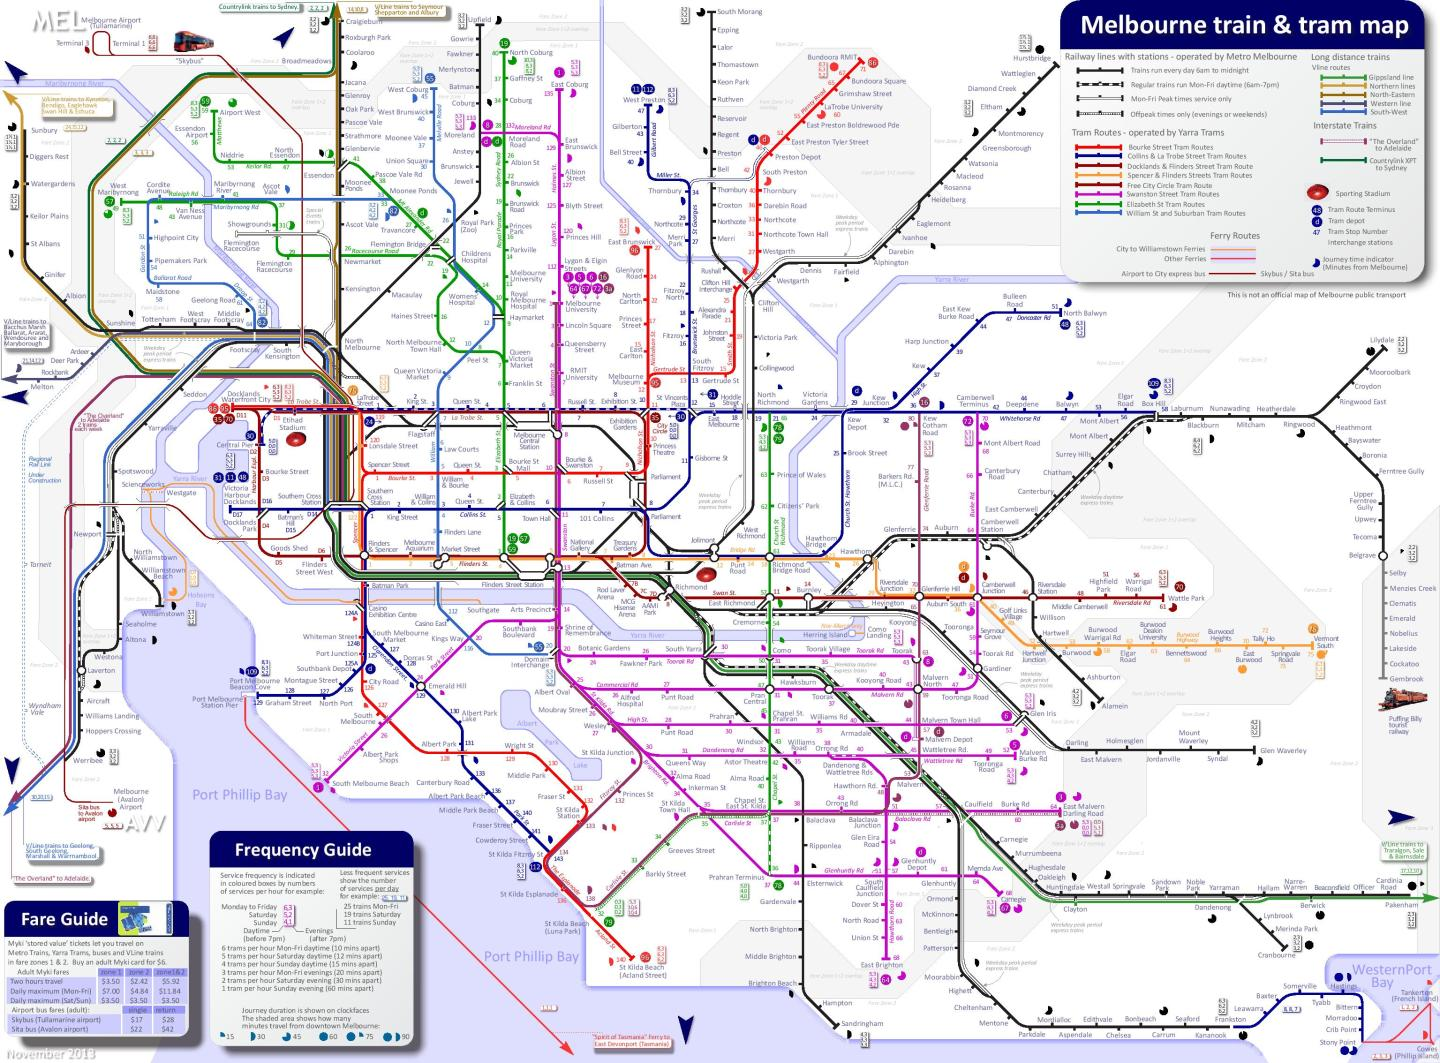 melbourne-train-and-tram-map